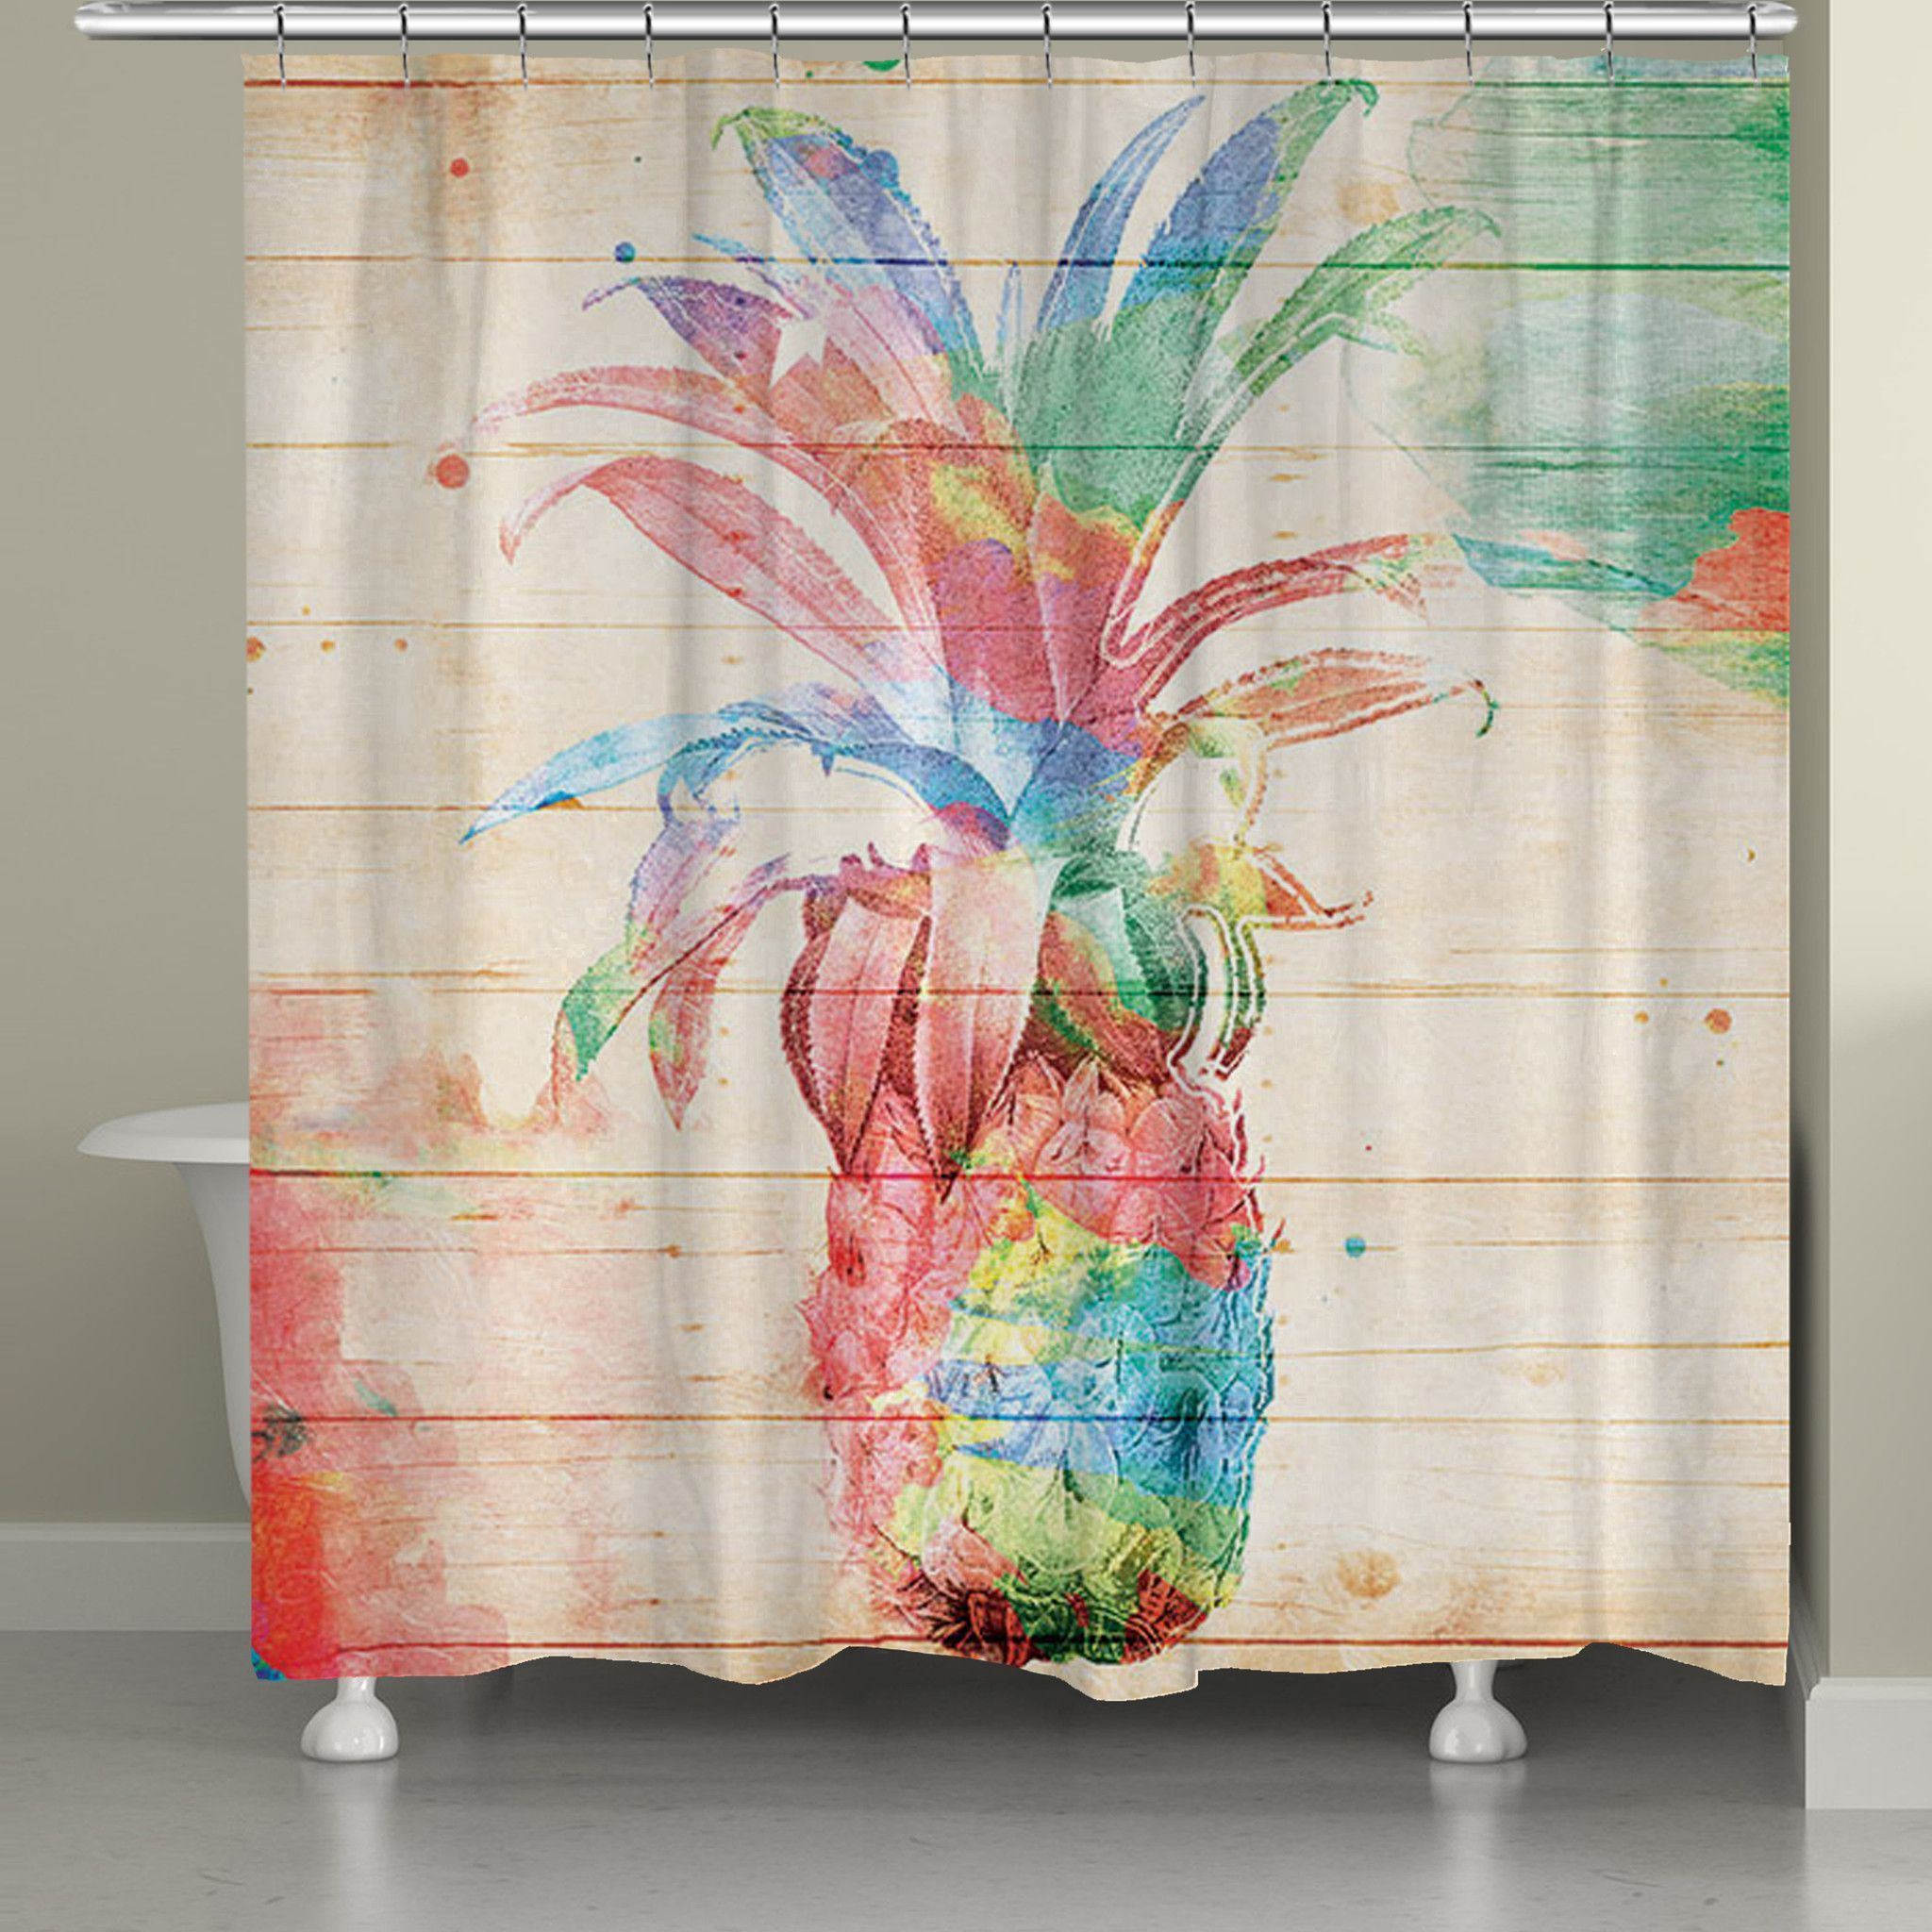 Colorful Pineapple Shower Curtain Pineapple Shower Curtain